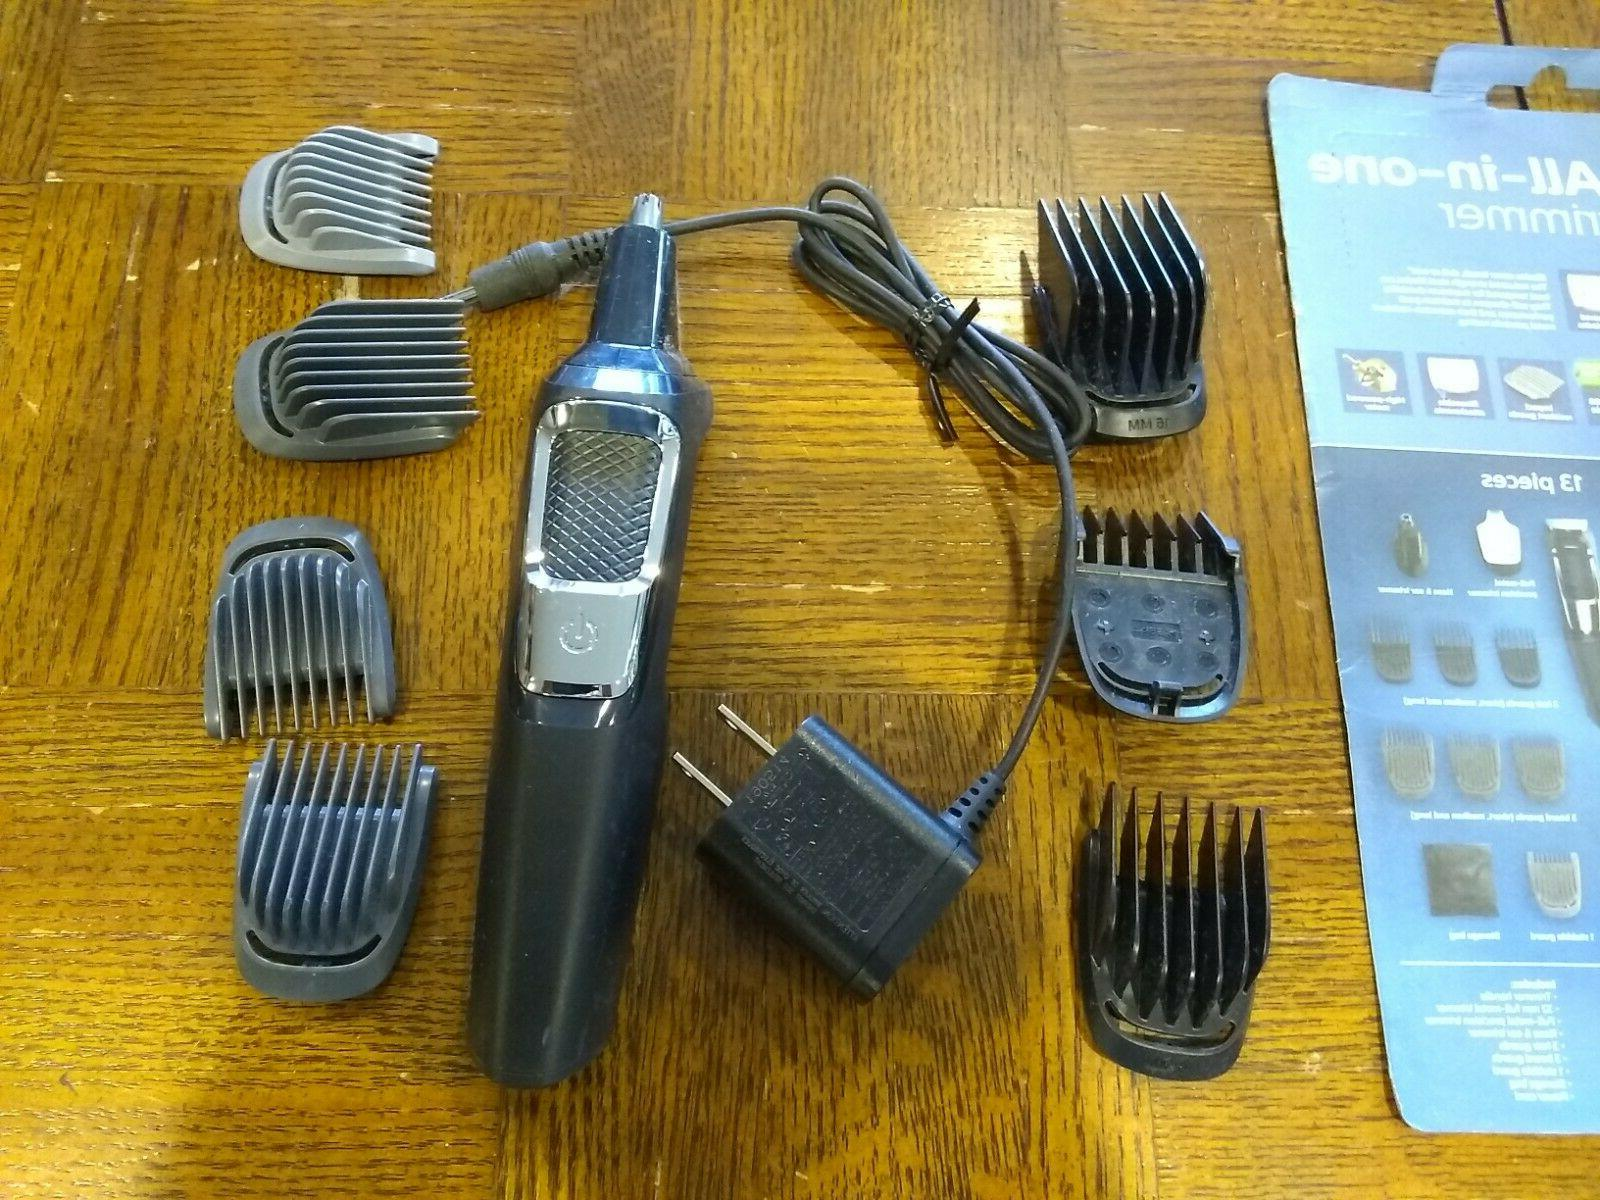 PHILIPS NORELCO ONE TRIMMER only unused 9 total